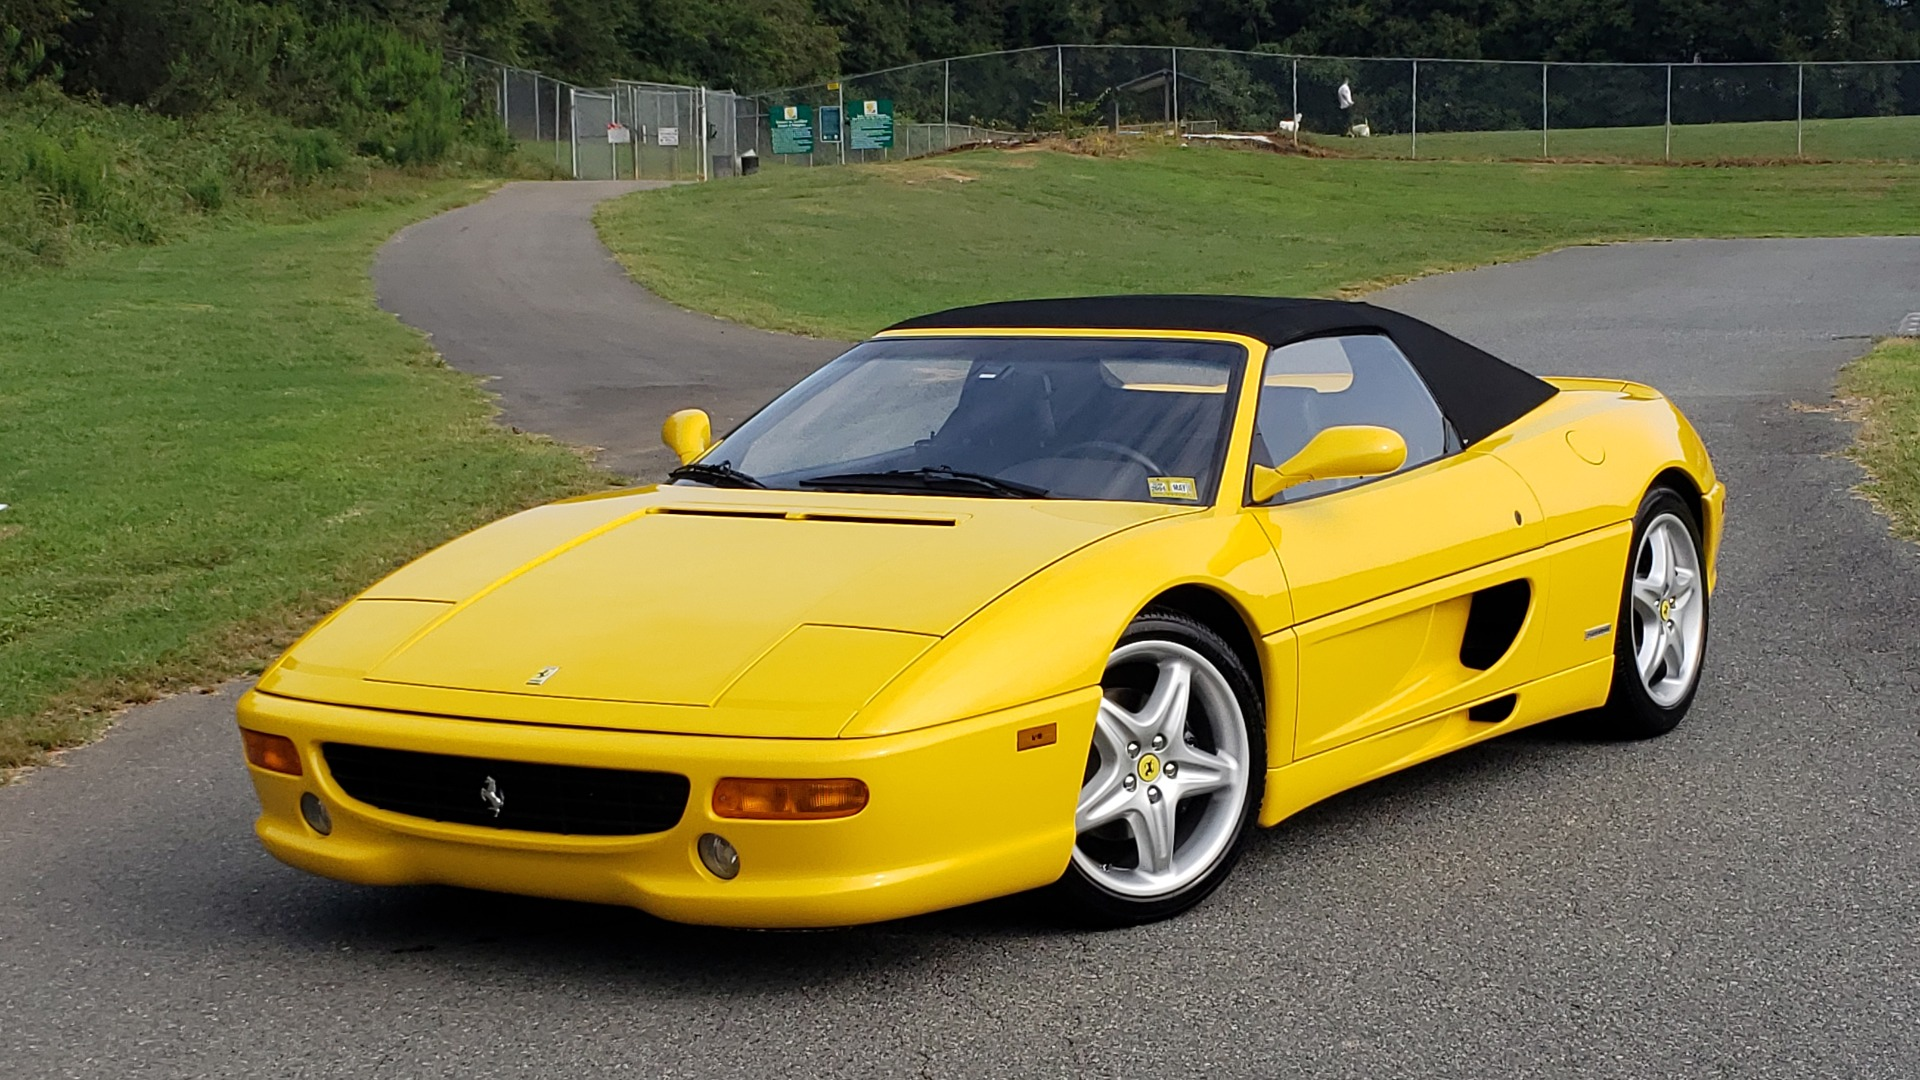 Used 1996 Ferrari F355 SPIDER / GATED 6-SPEED MANUAL / LOW MILES / NEW TIRES for sale $95,999 at Formula Imports in Charlotte NC 28227 1